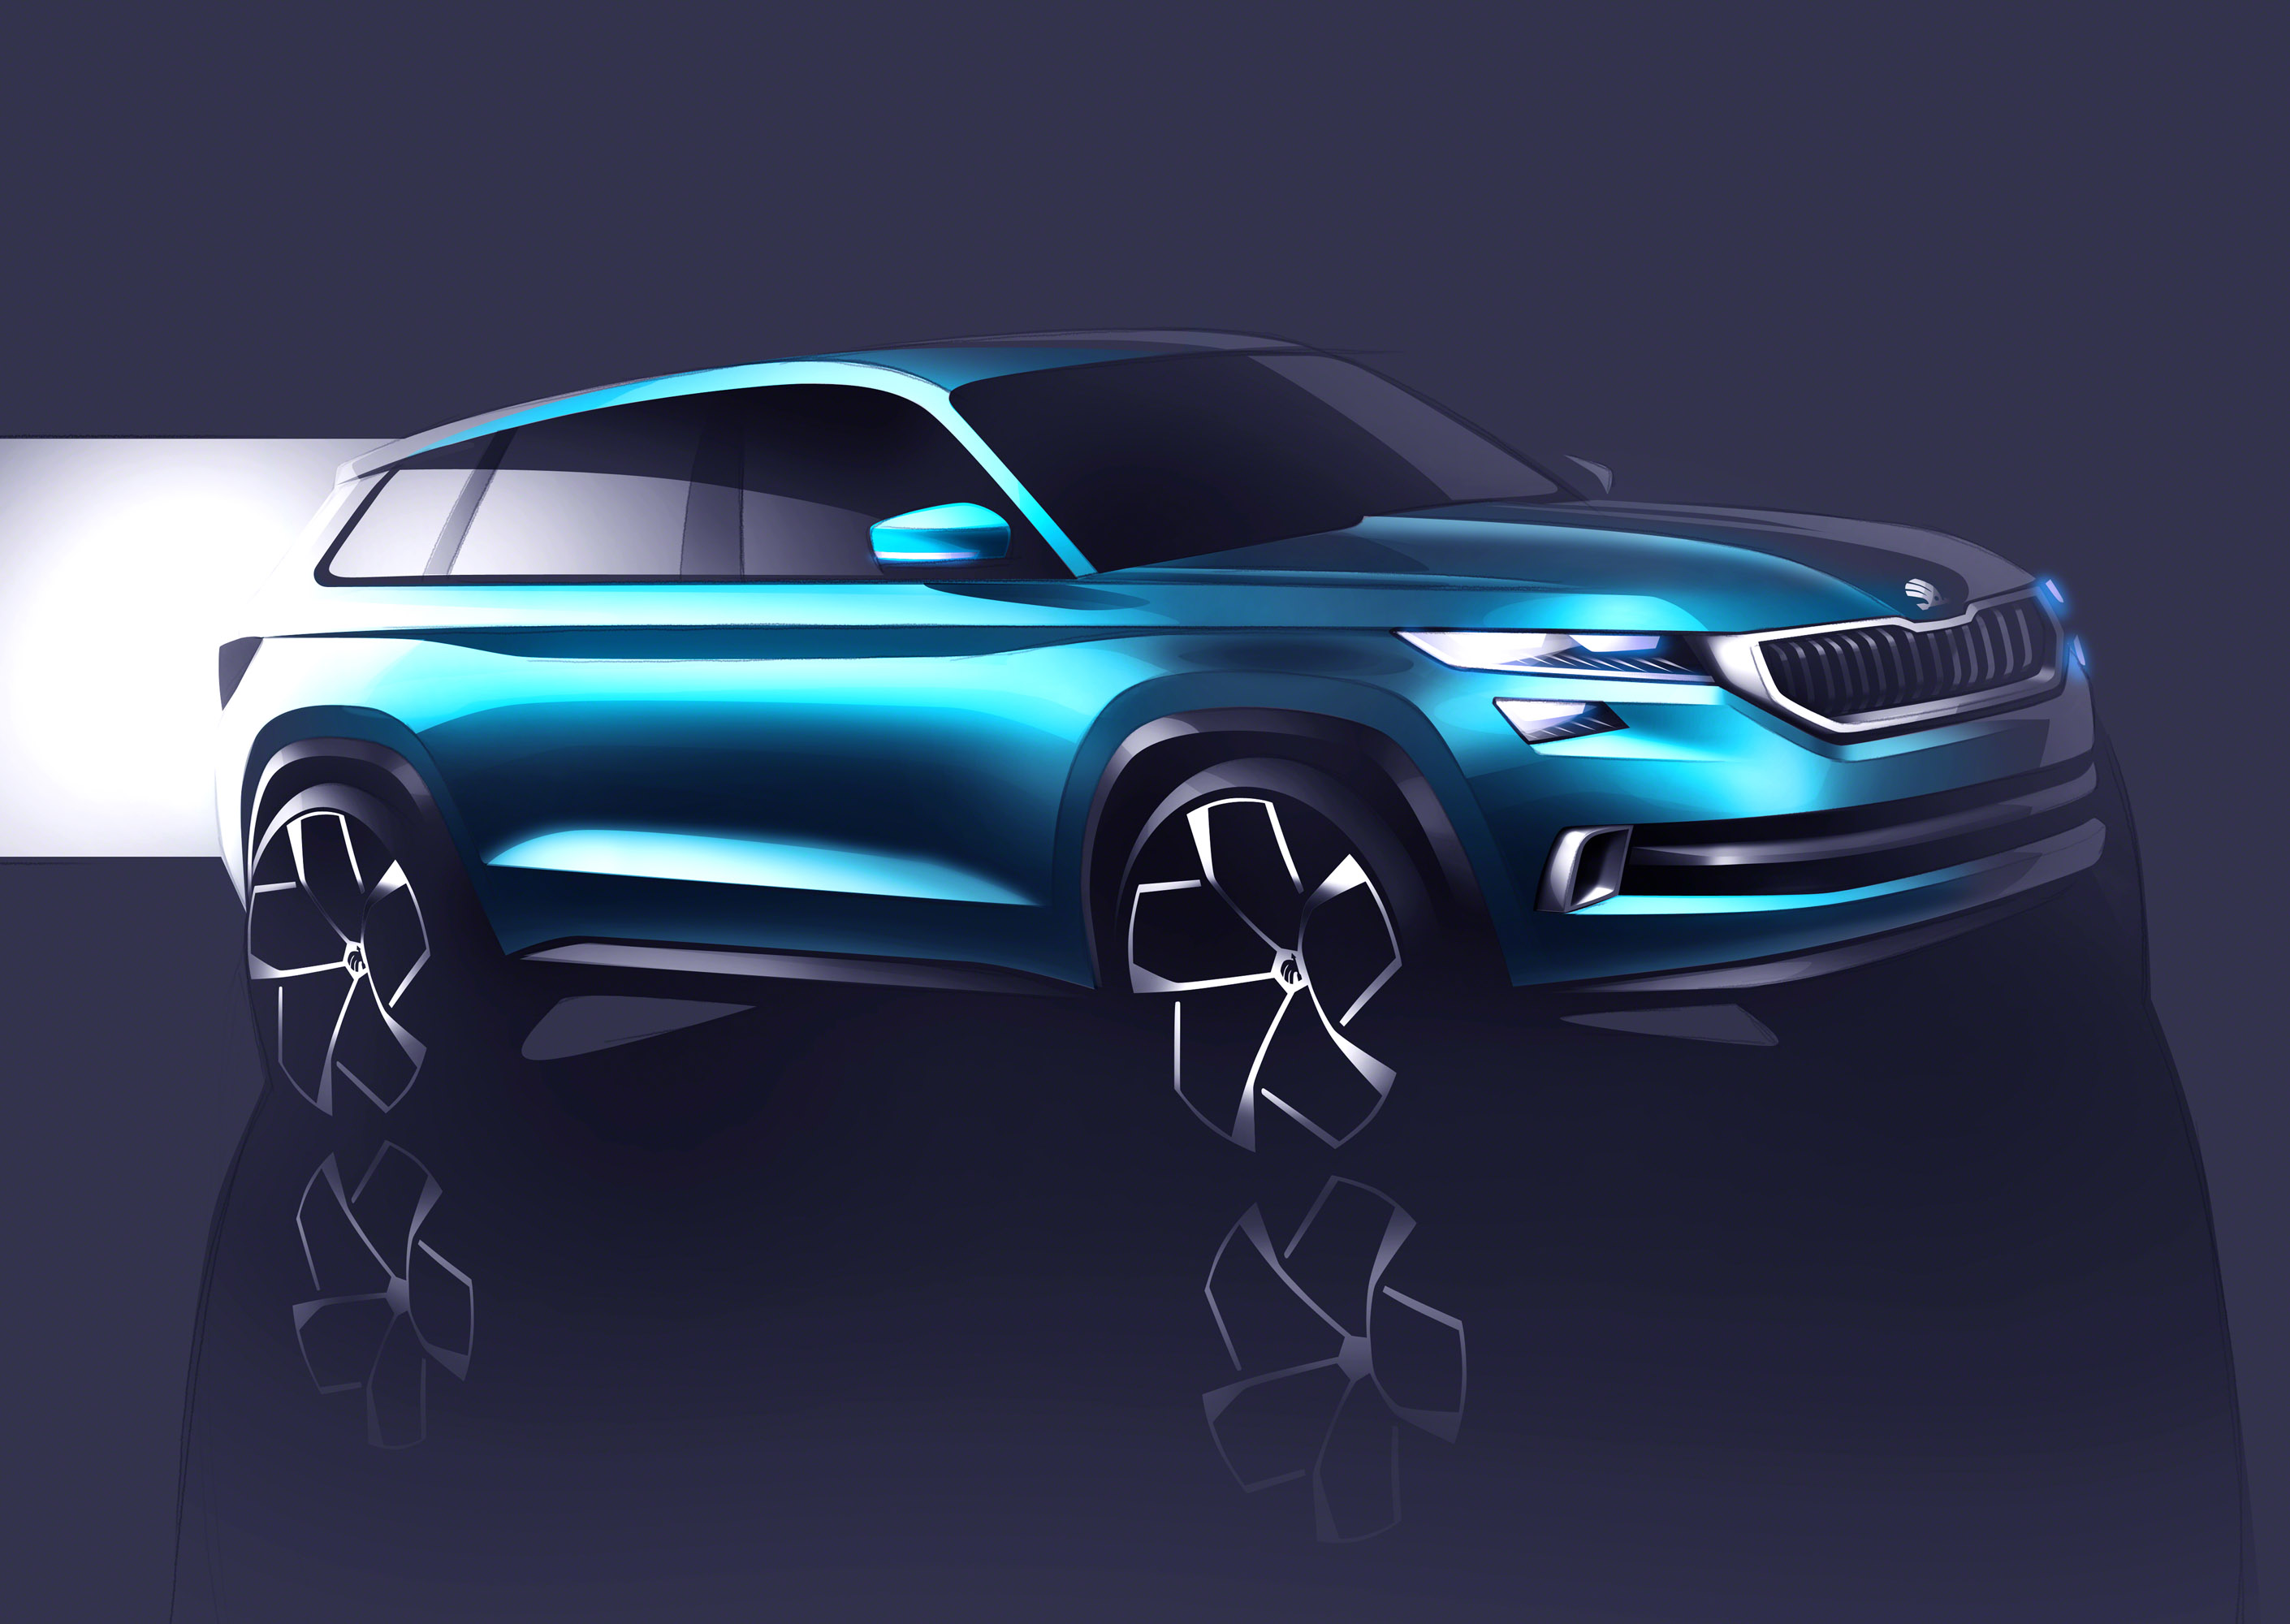 2017 Skoda Fabia Sketches photo - 4